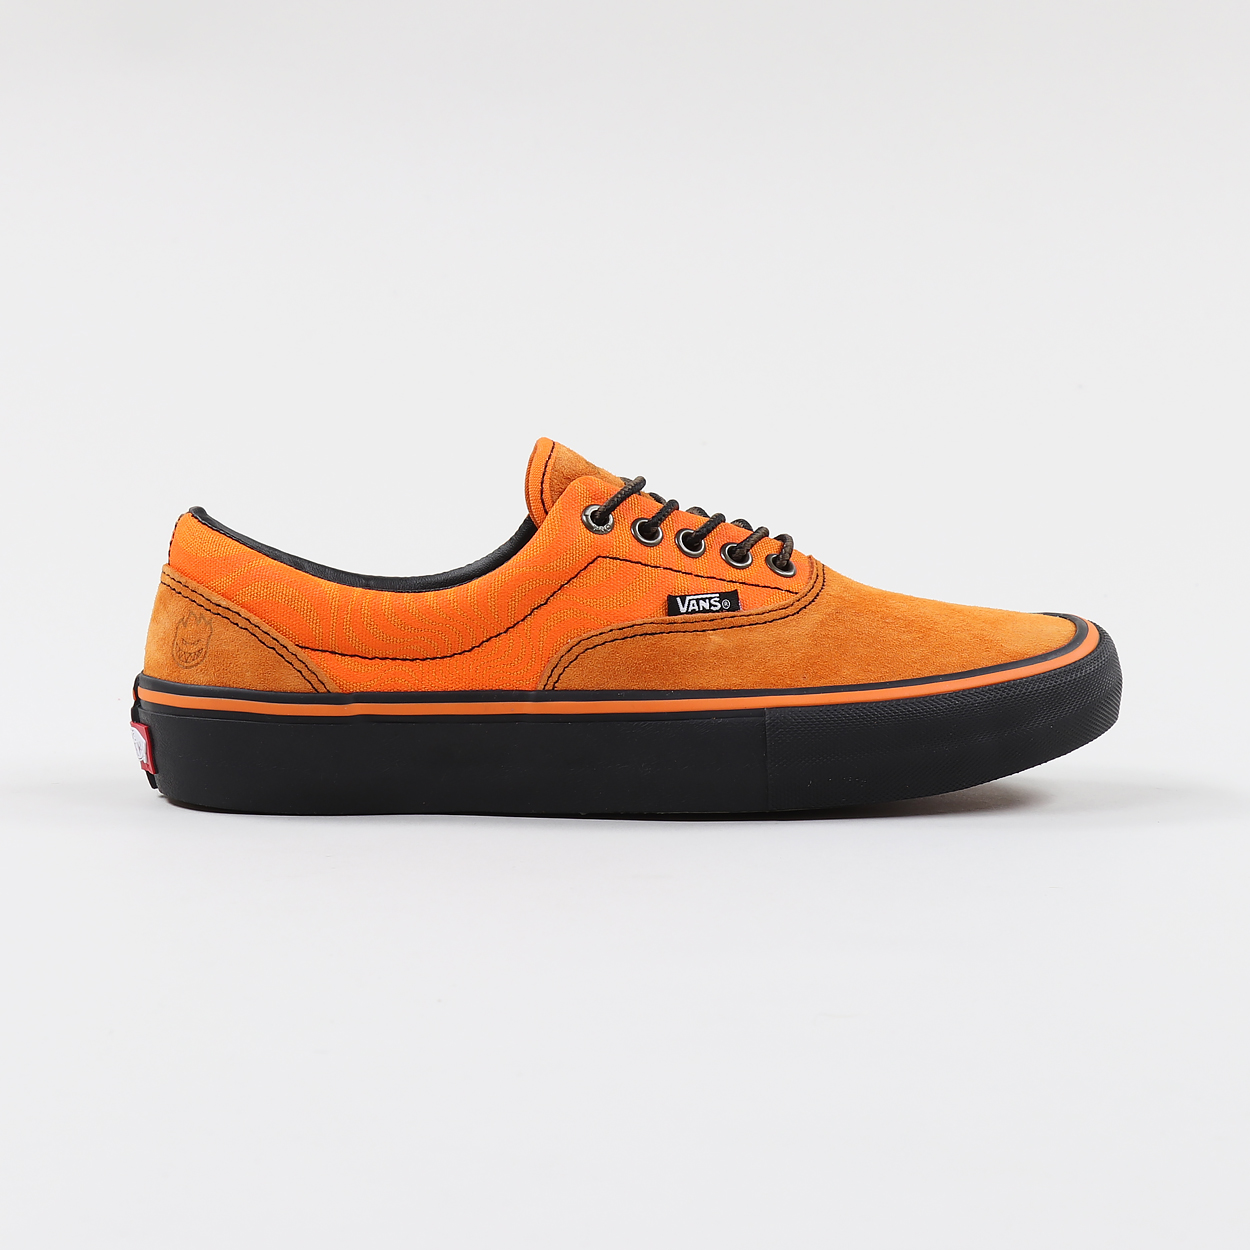 92e772ea73d60c Vans x Spitfire Skate Era Pro Suede Canvas Shoes Cardiel Orange £55.00